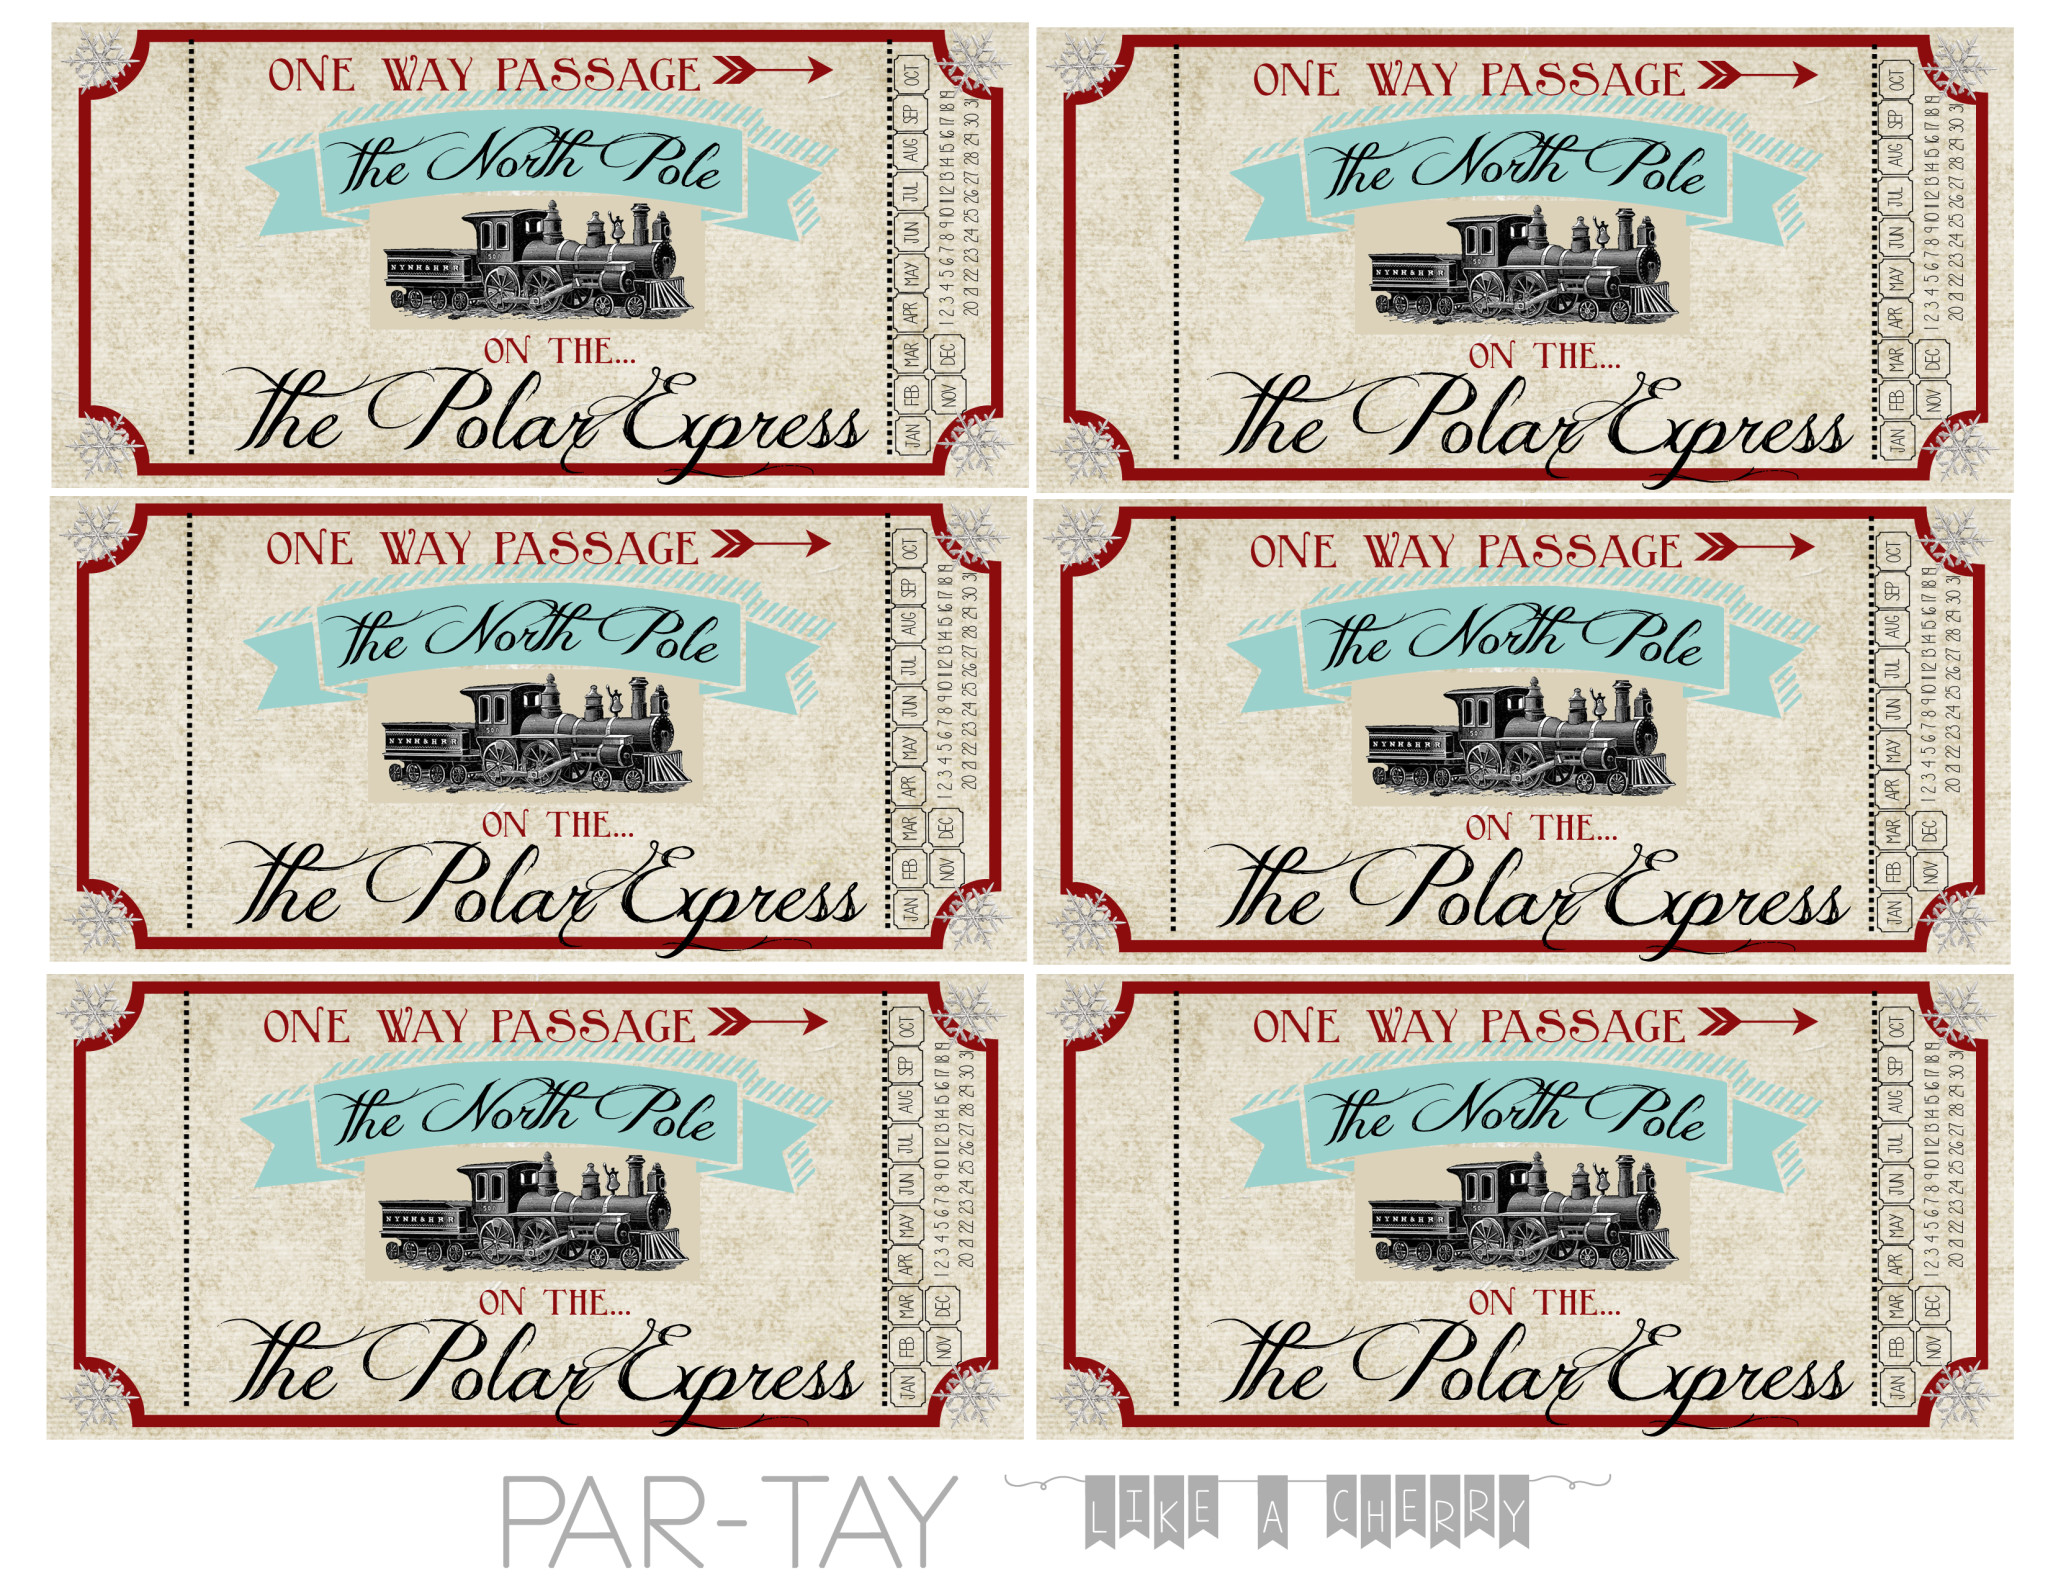 Polar Express Train Tickets Free Printable Party Like a Cherry – Printable Tickets Free